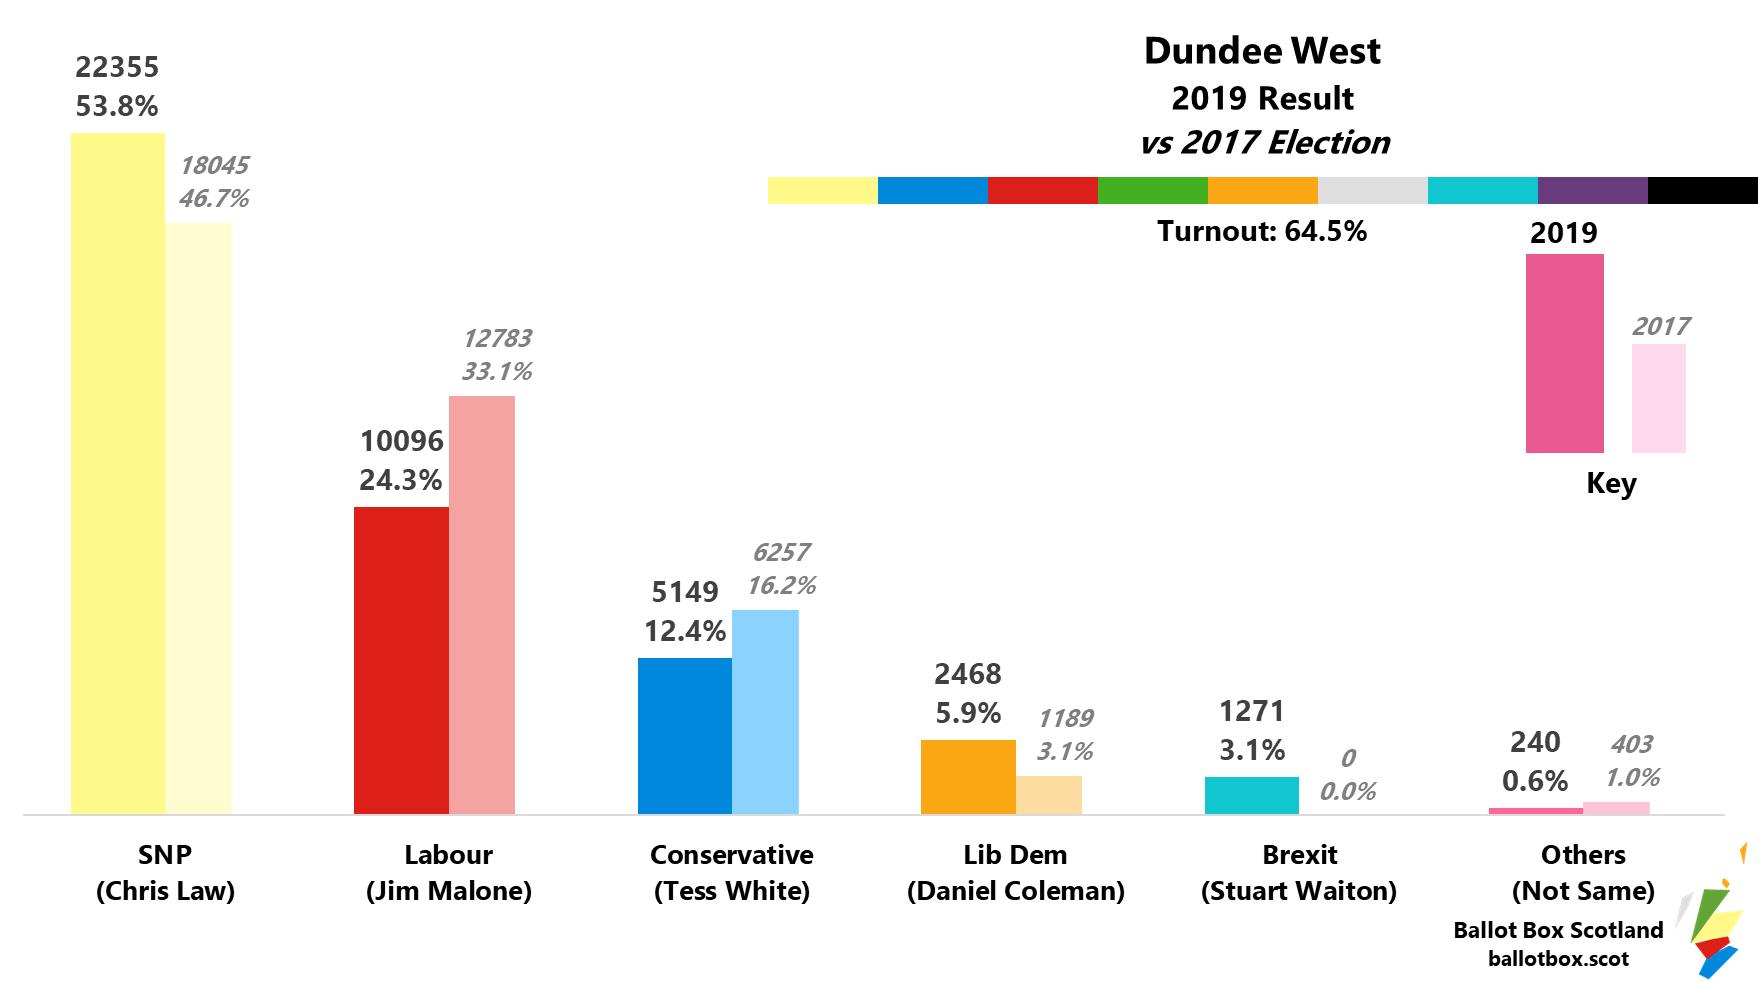 Dundee West 2019